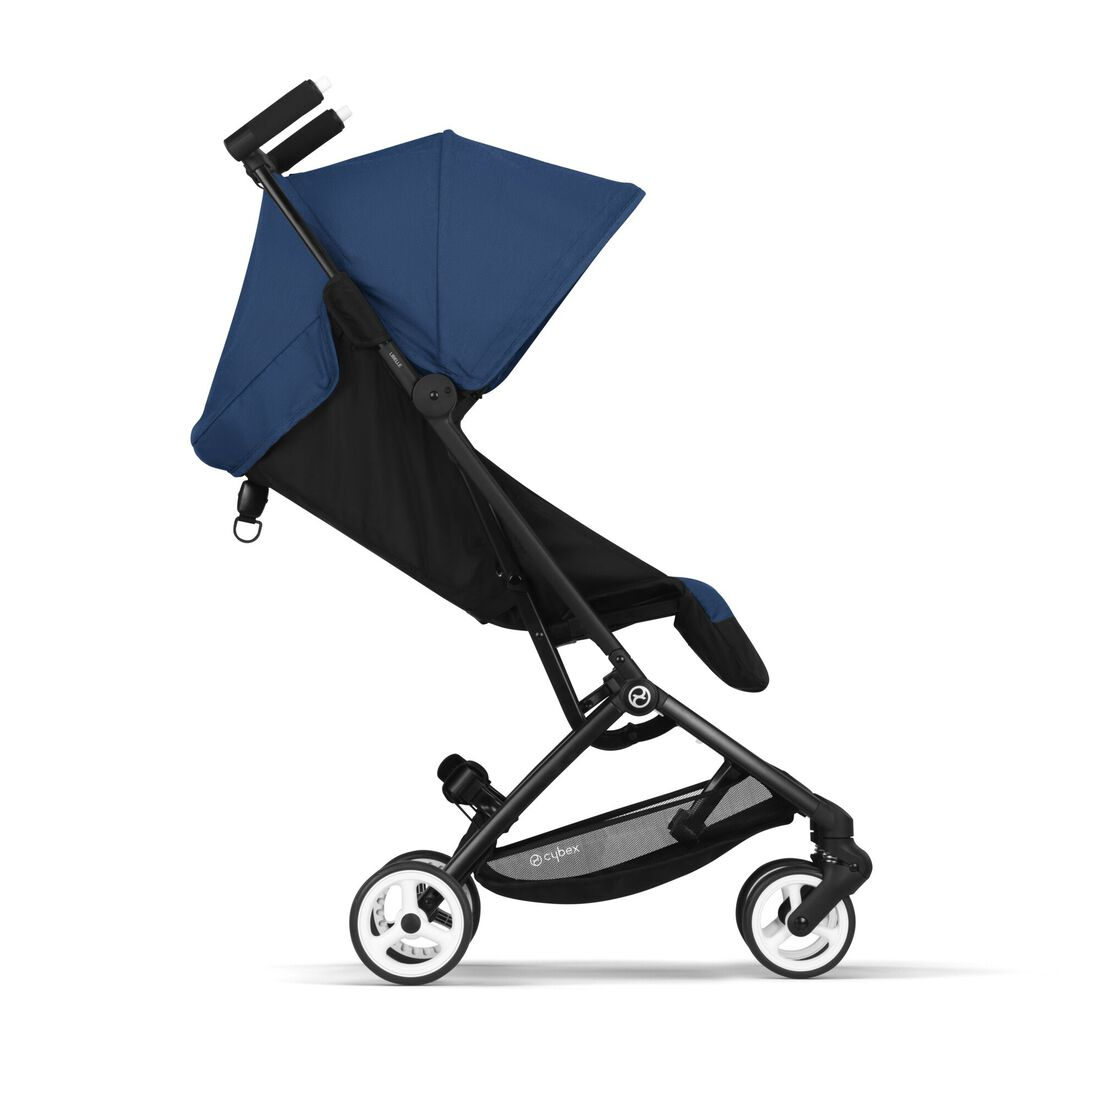 CYBEX Libelle - Navy Blue in Navy Blue large image number 4